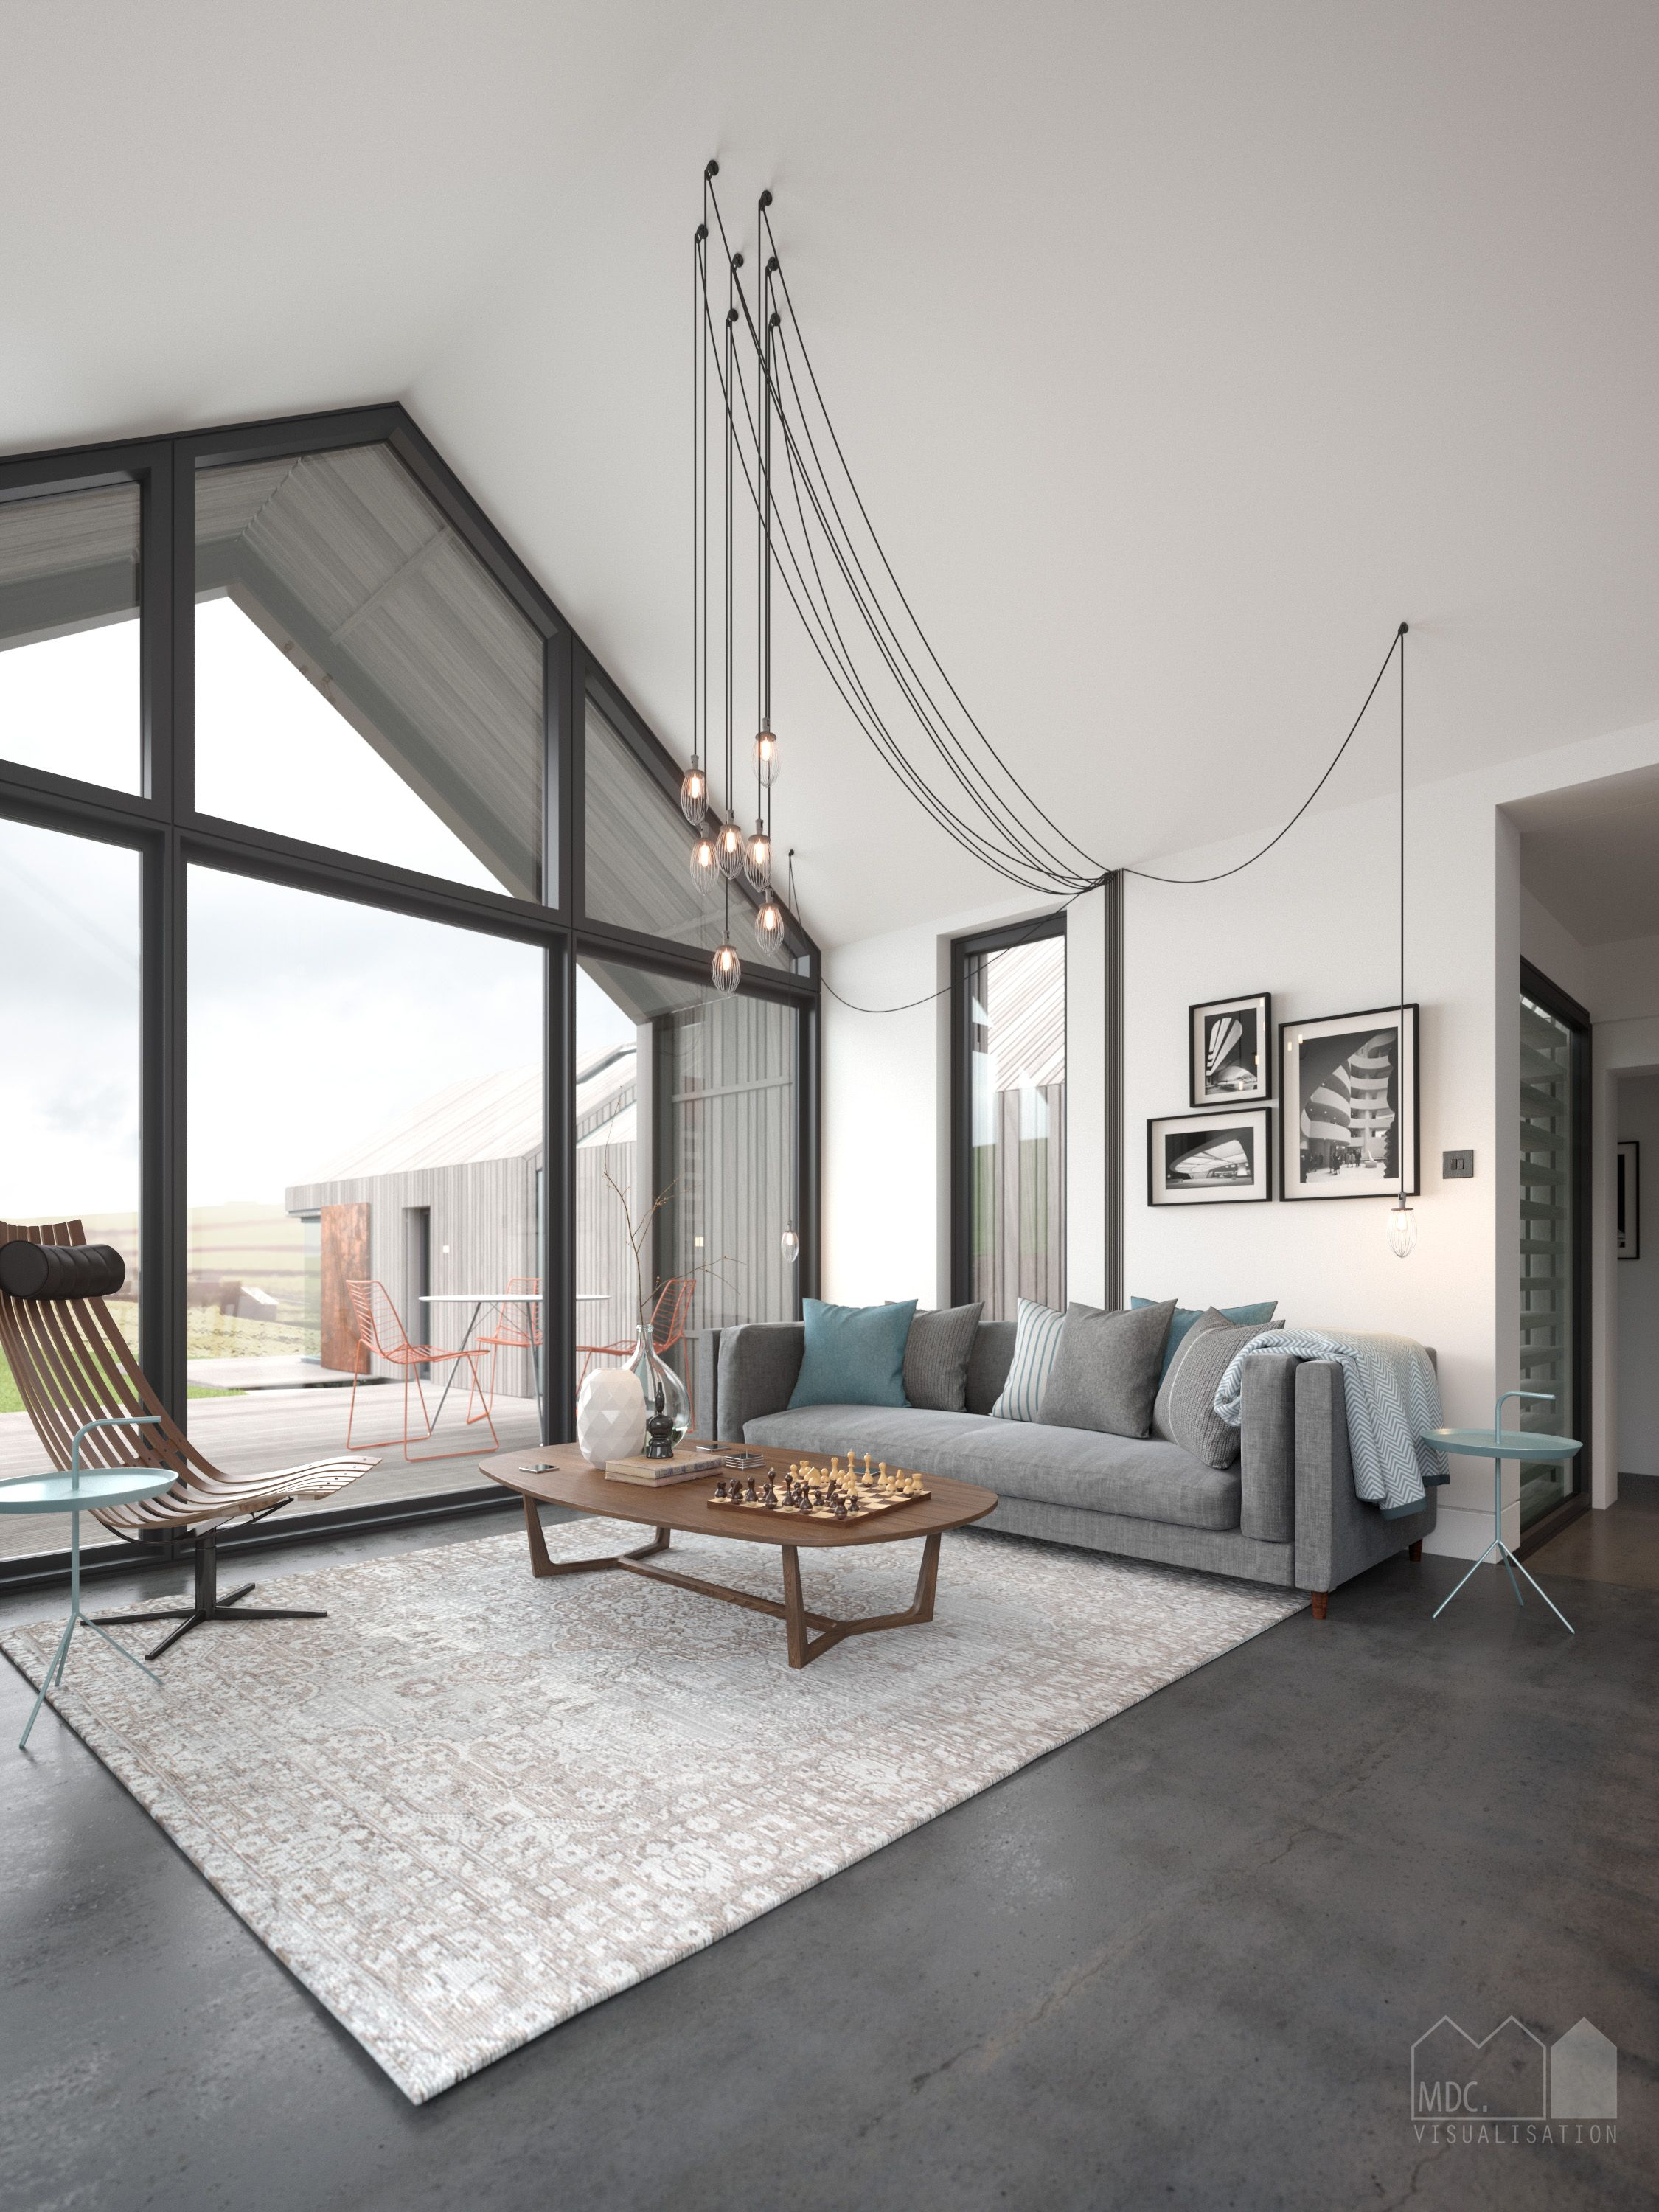 Interior Of Single Storey Pitched Roof House With Apex Window And Polished Concrete  Floor. Visual